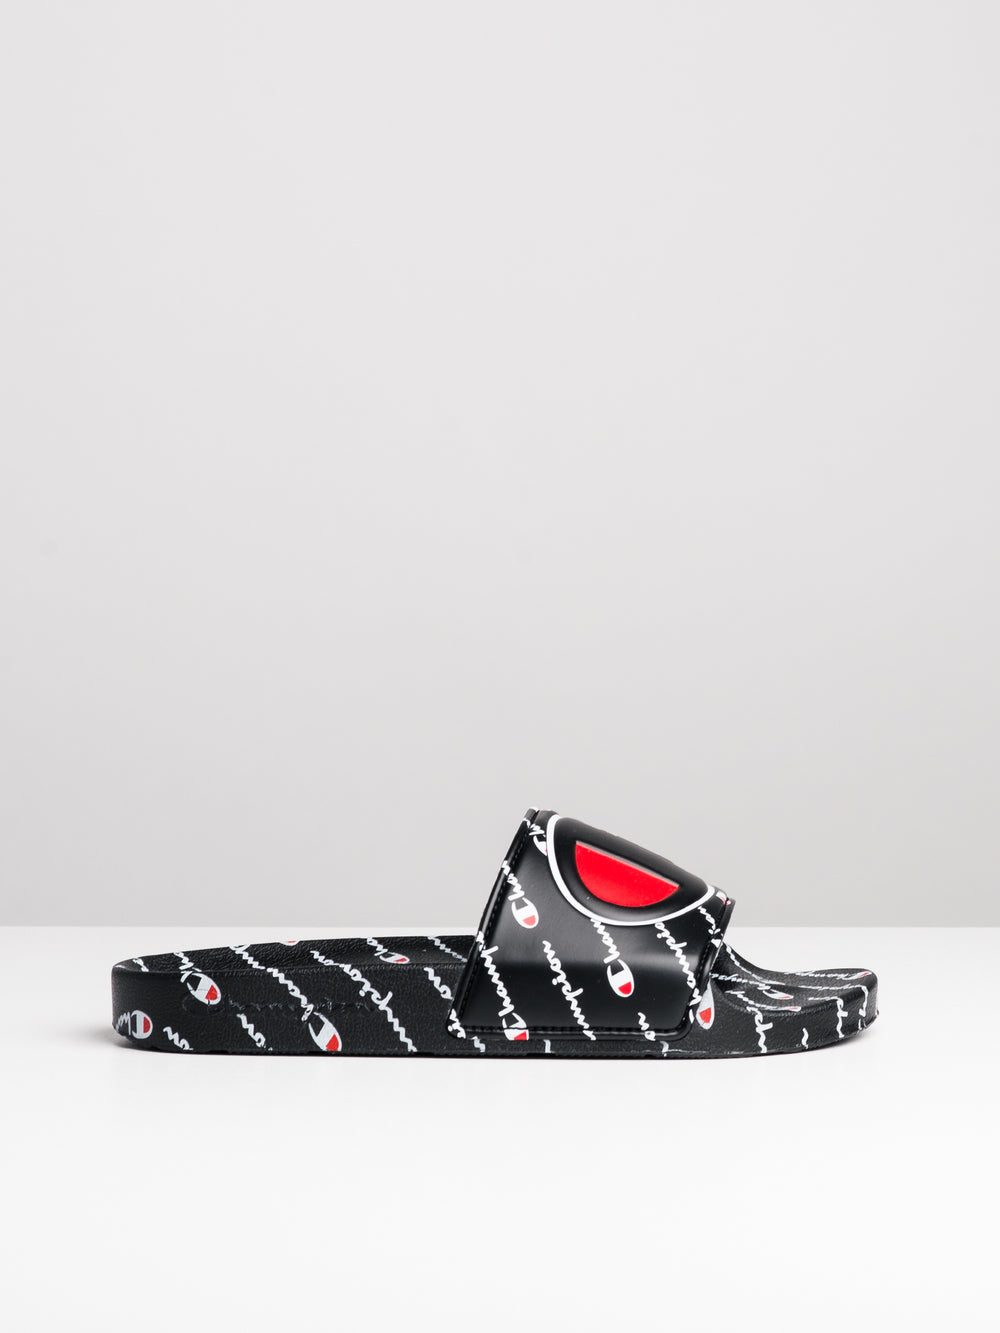 WOMENS IPO REPEAT - BLACK SLIDES